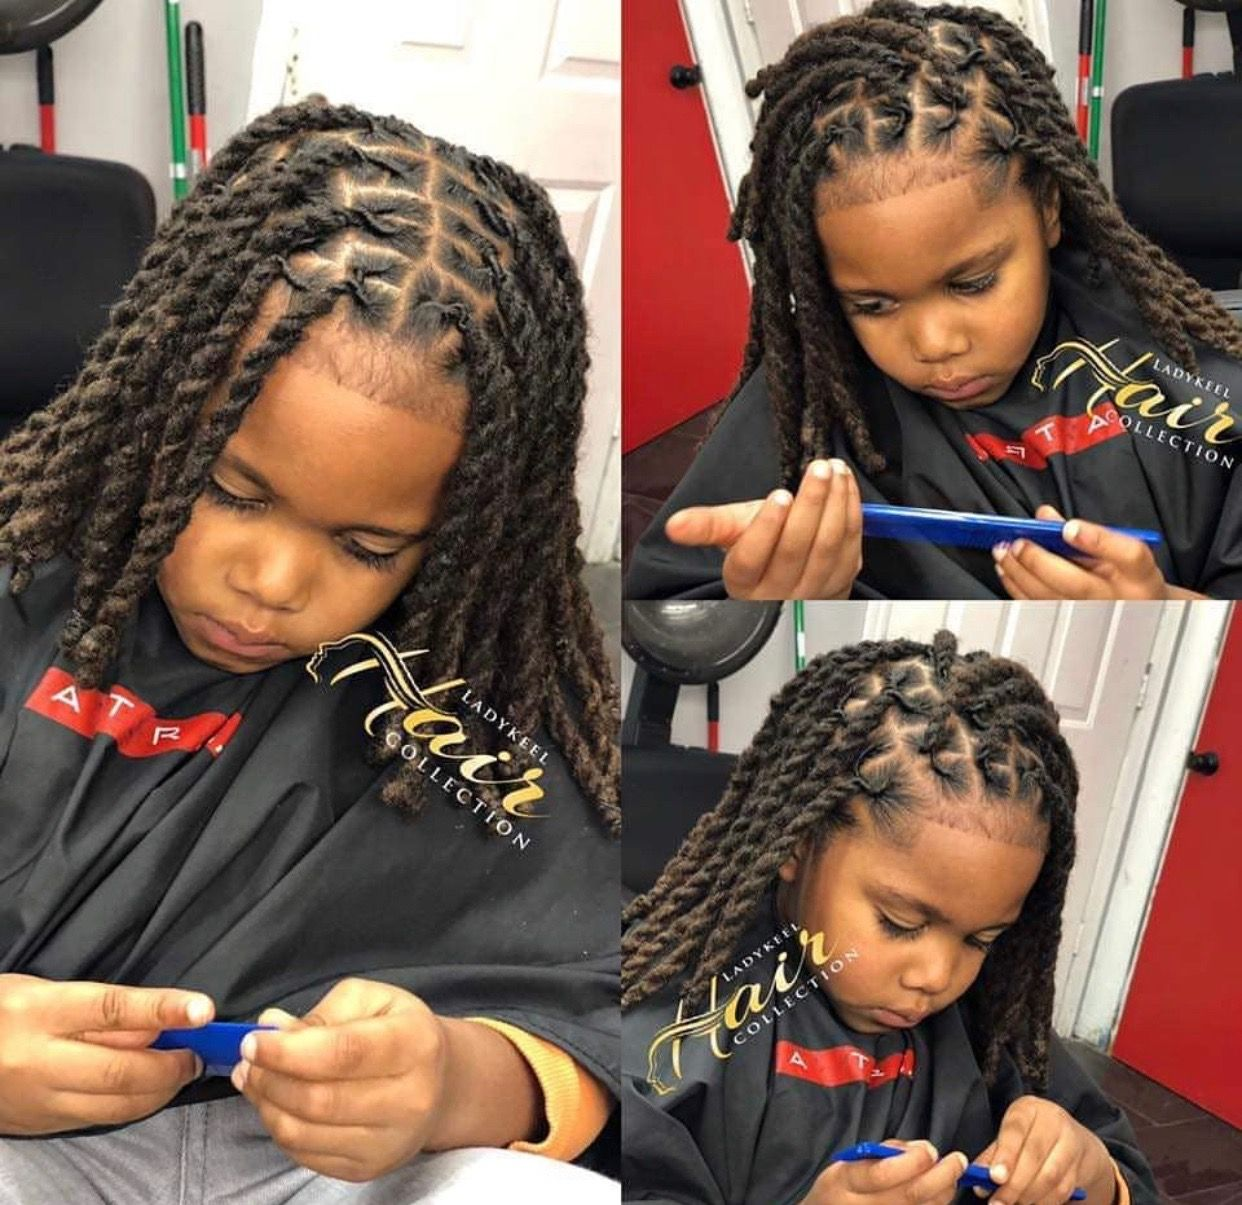 Pin By C Baby On Family Children Friendship Kids Hairstyles Boy Braids Hairstyles Braids For Boys